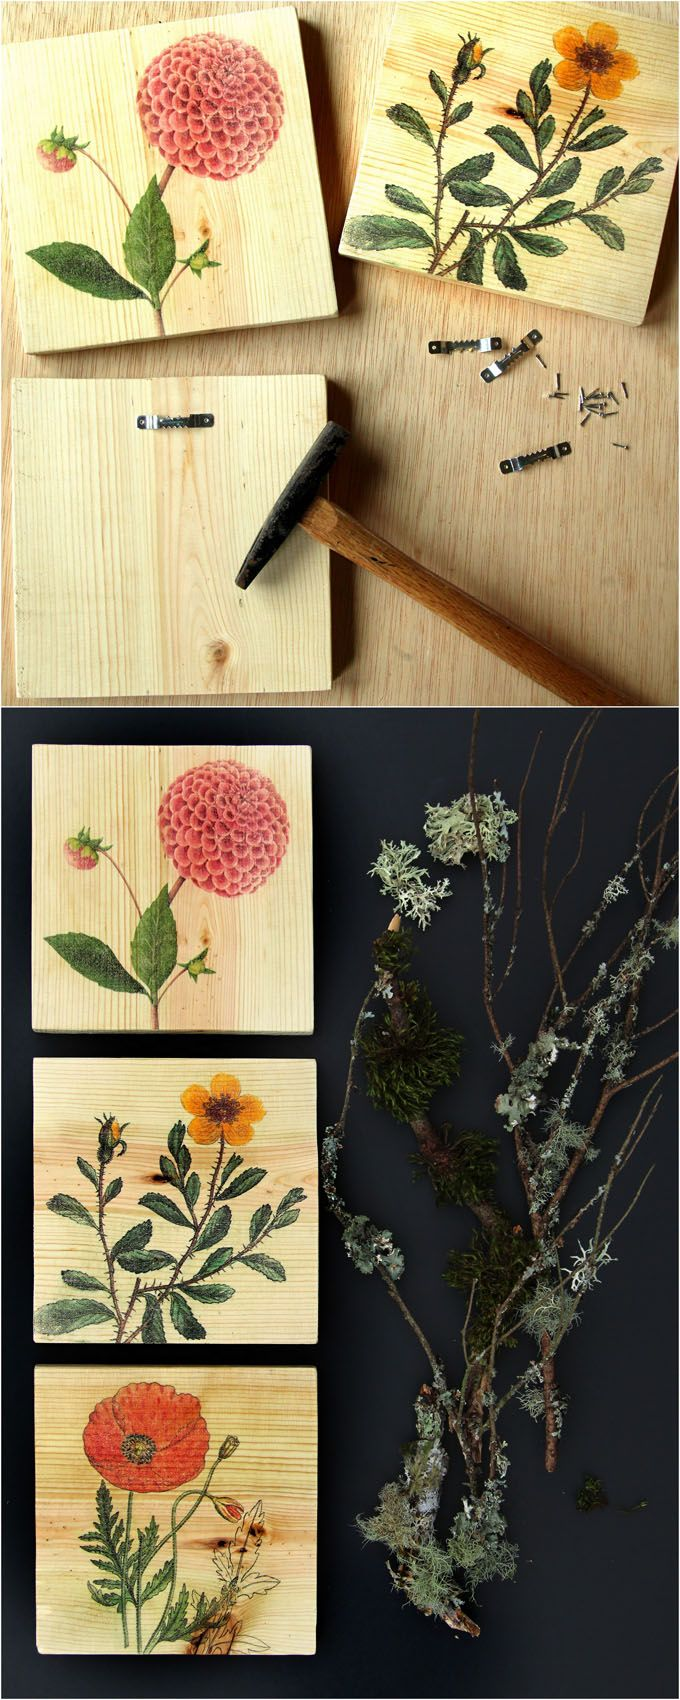 DIY Wall Art & How to Transfer Image to Wood - Page 2 of 2 ...